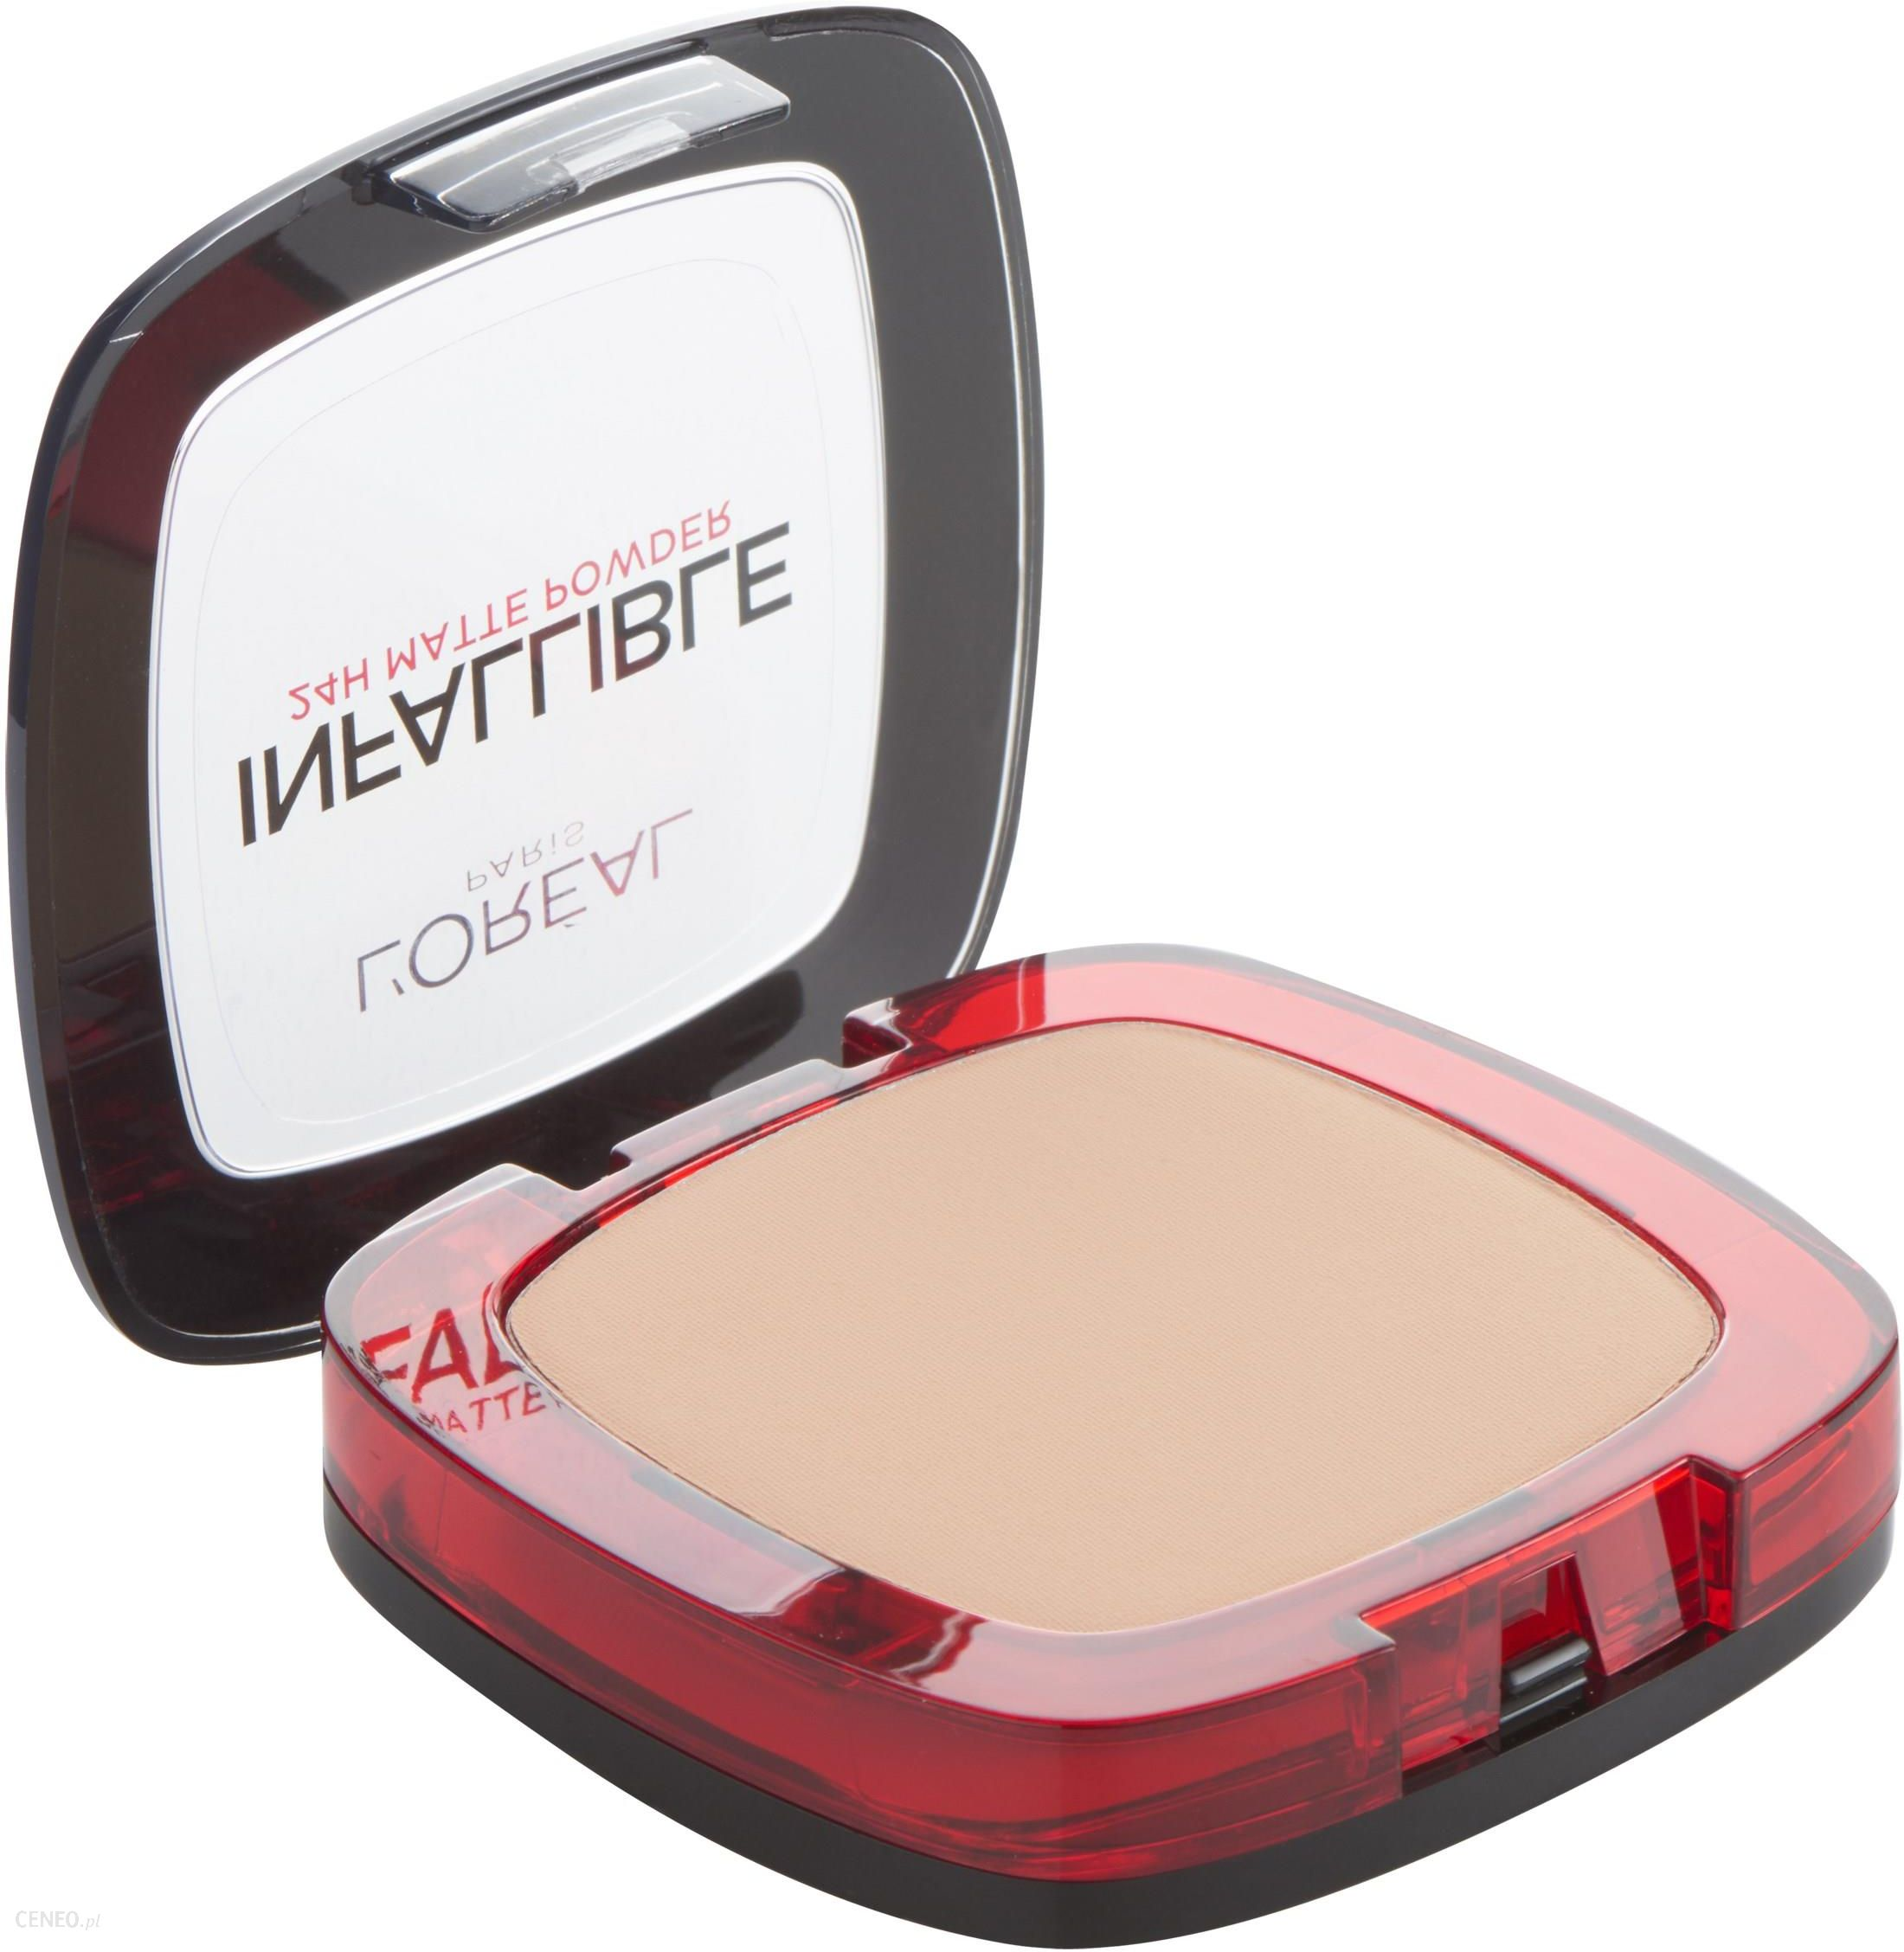 L Oreal Paris Infallible Puder 160 Sand Beige 9g Opinie I Ceny Na Ceneo Pl